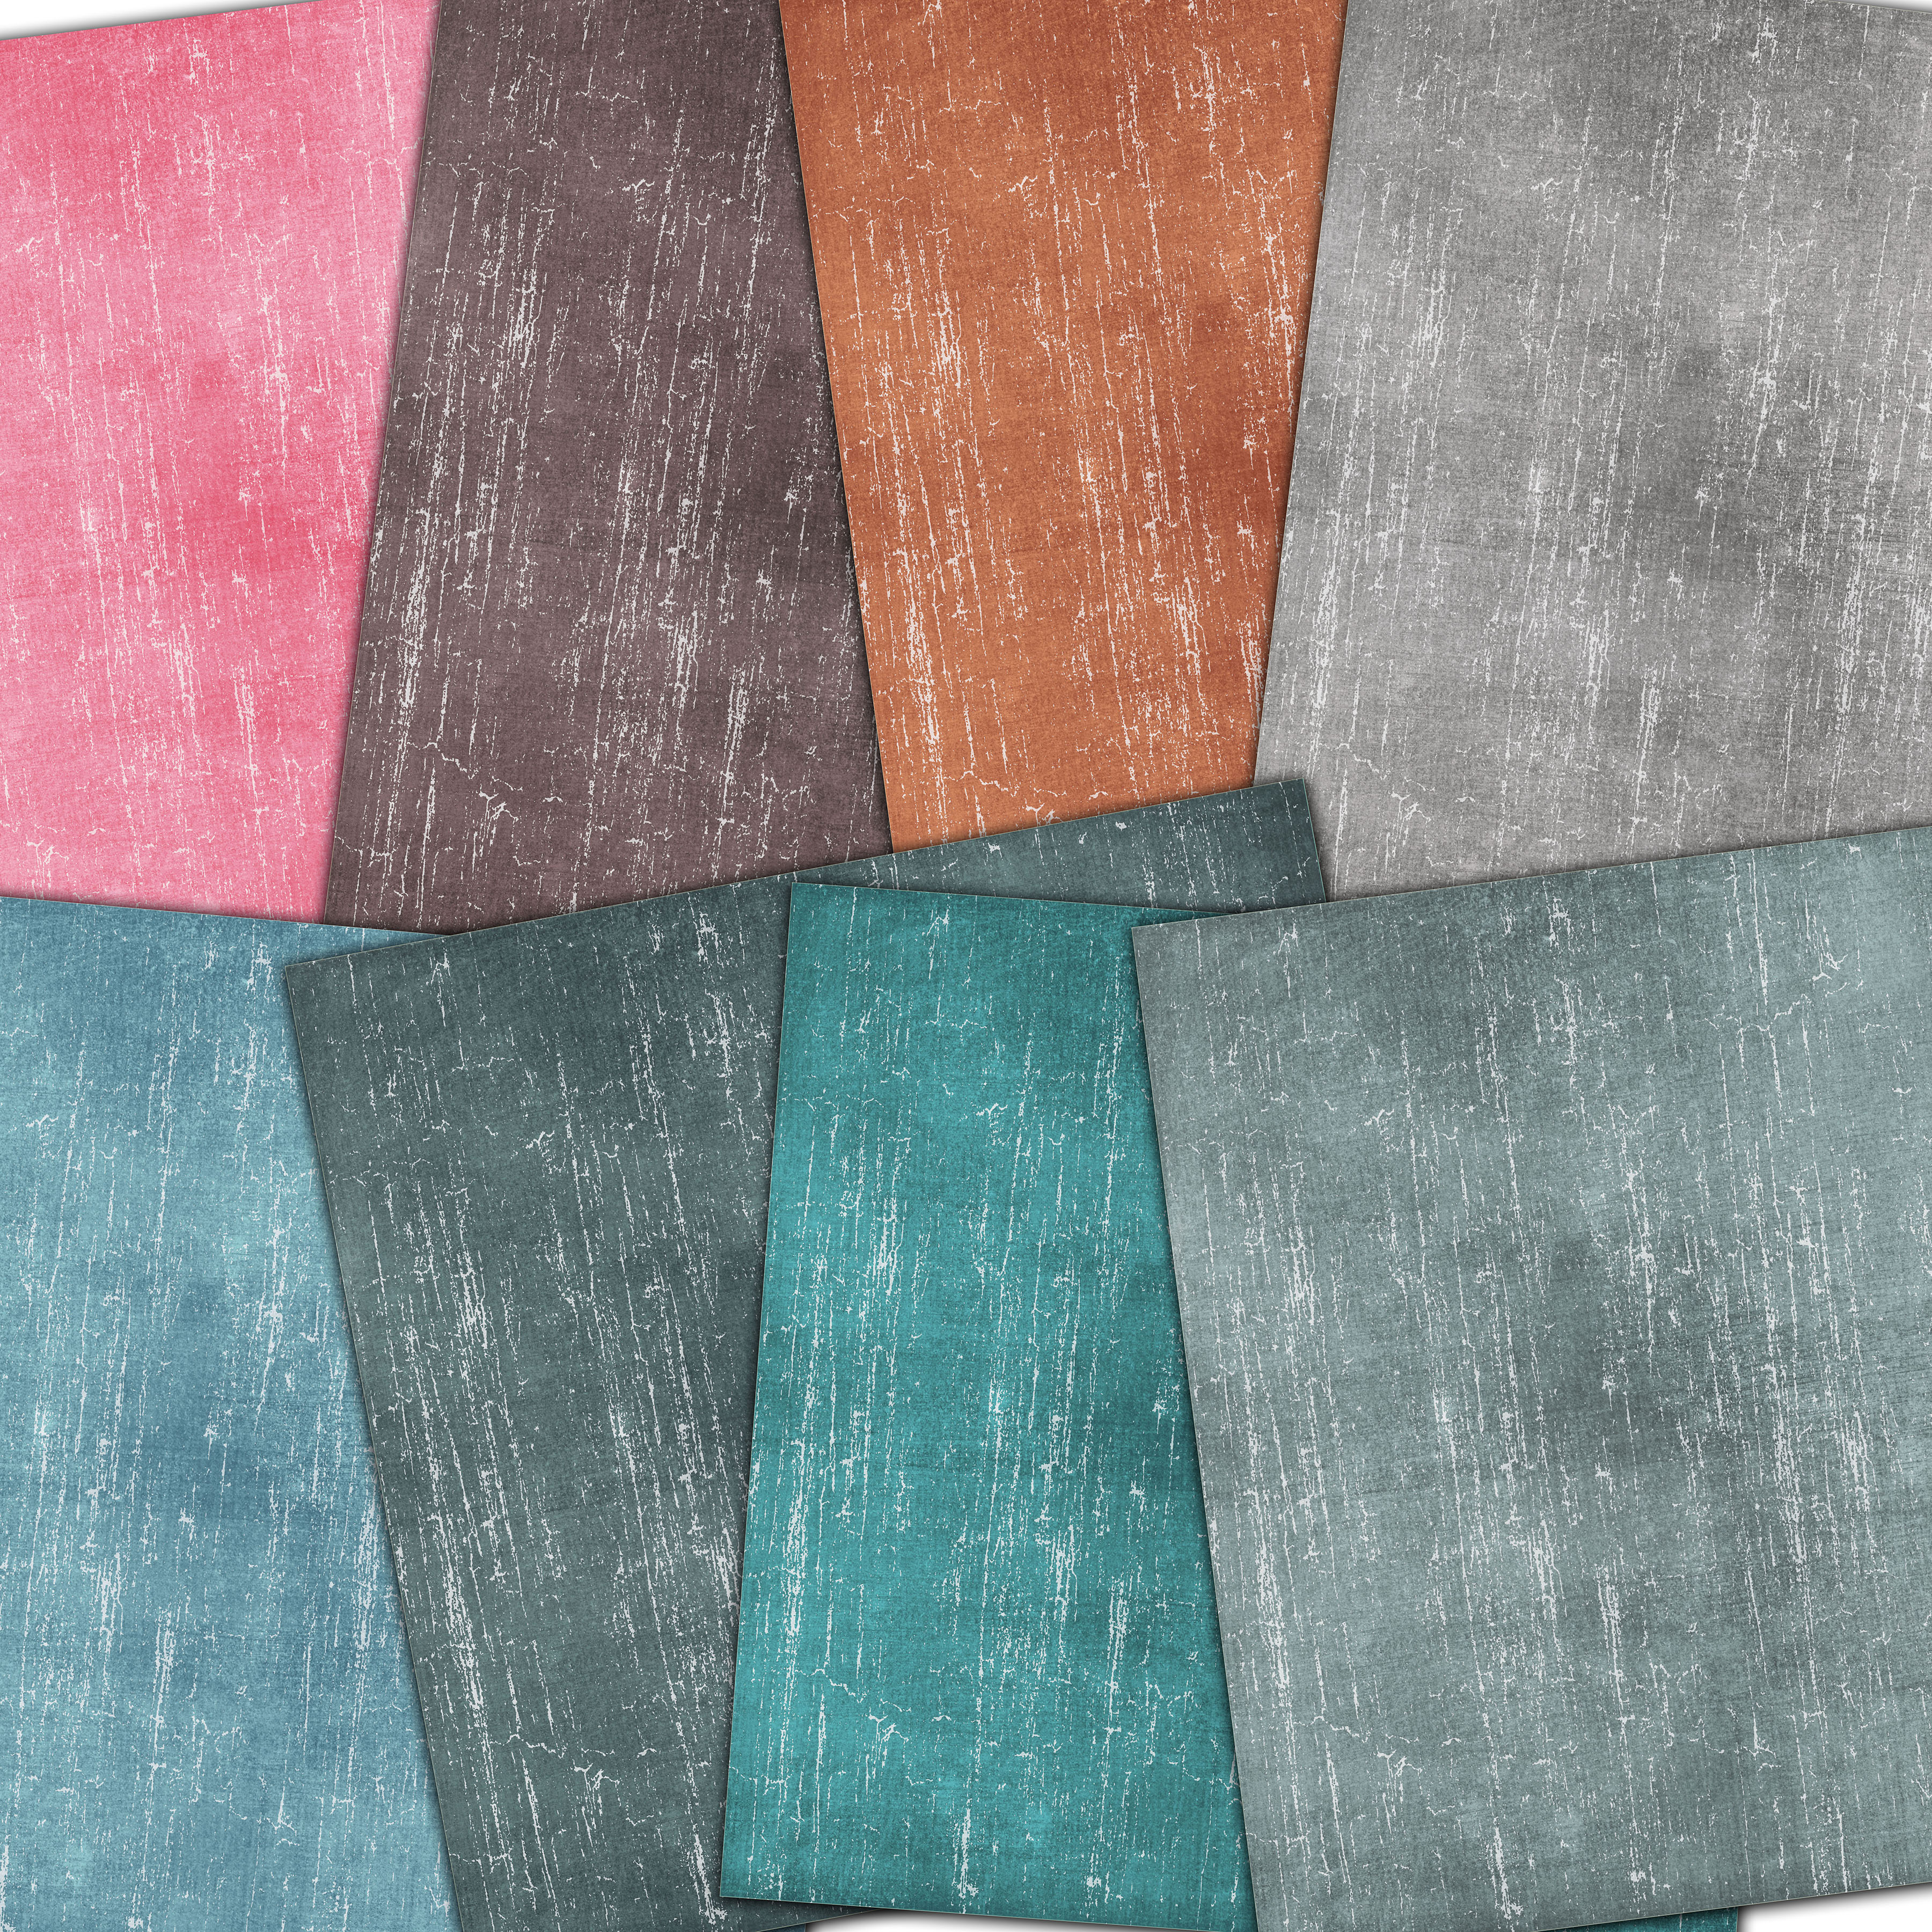 Download Free Distressed Canvas Graphic By Retrowalldecor Creative Fabrica for Cricut Explore, Silhouette and other cutting machines.